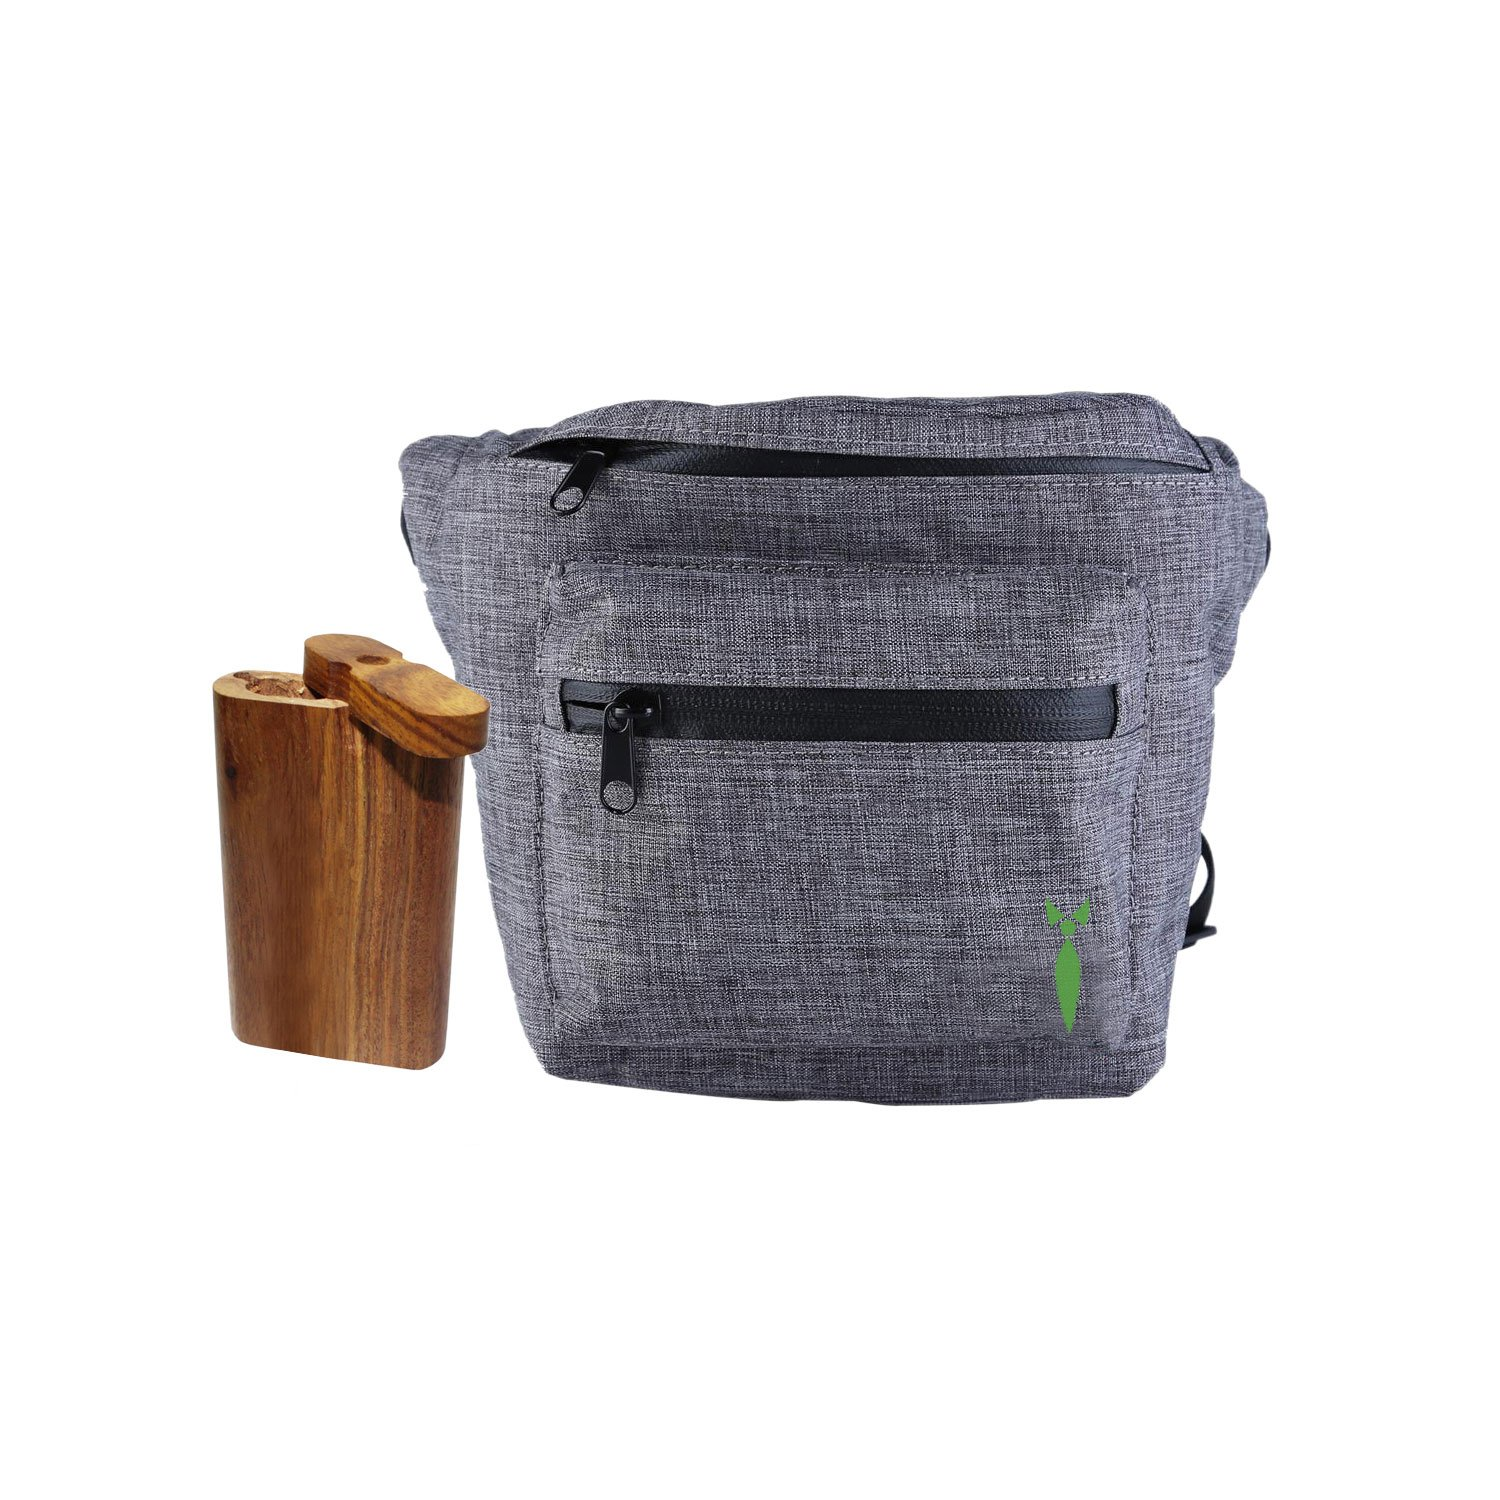 Discreet Smoker All In 1 Smell Proof Bag Fanny Pack For Festivals And Outdoor Events